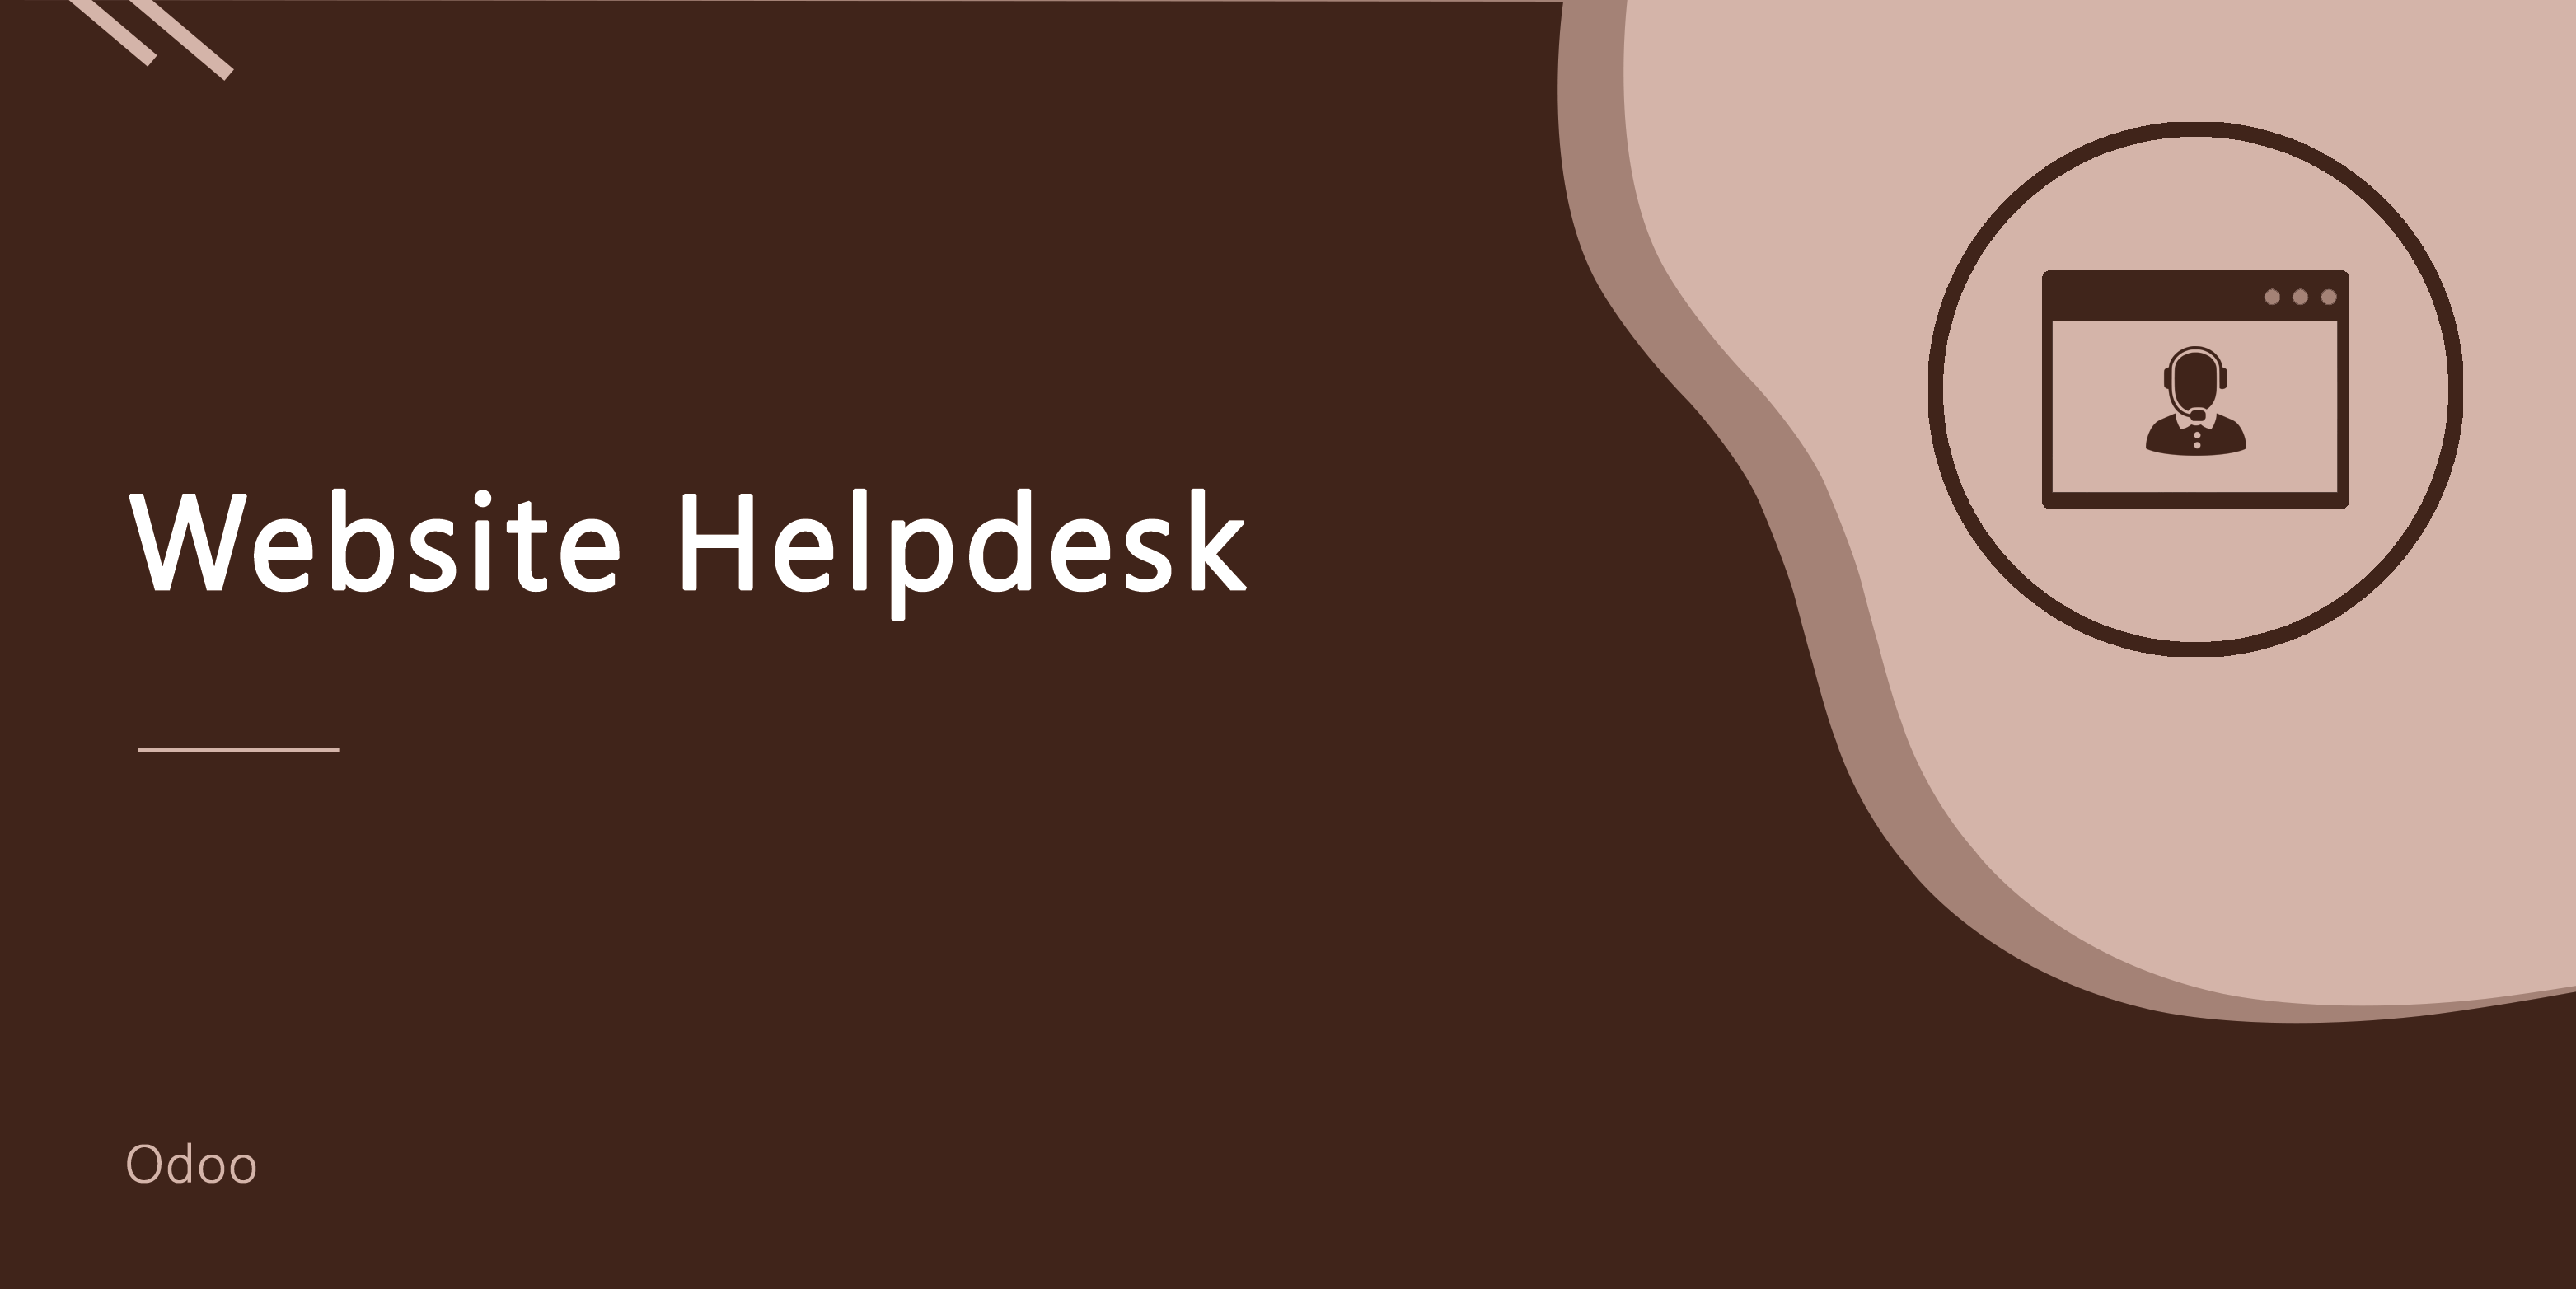 Website Helpdesk